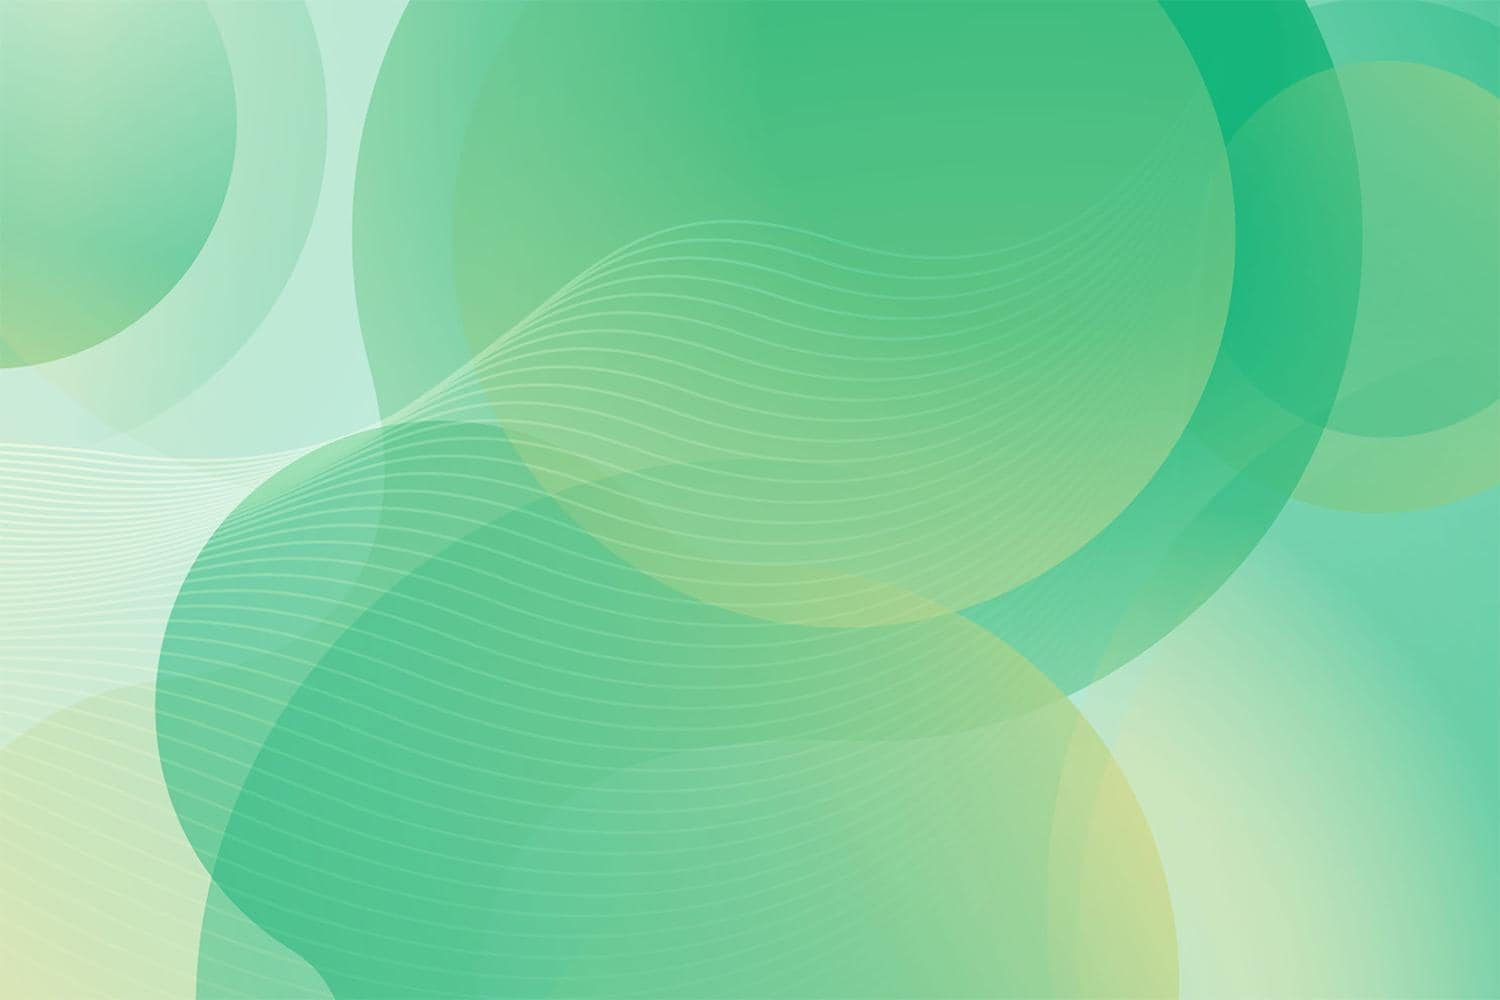 Green Background with Circles and waves in transparency